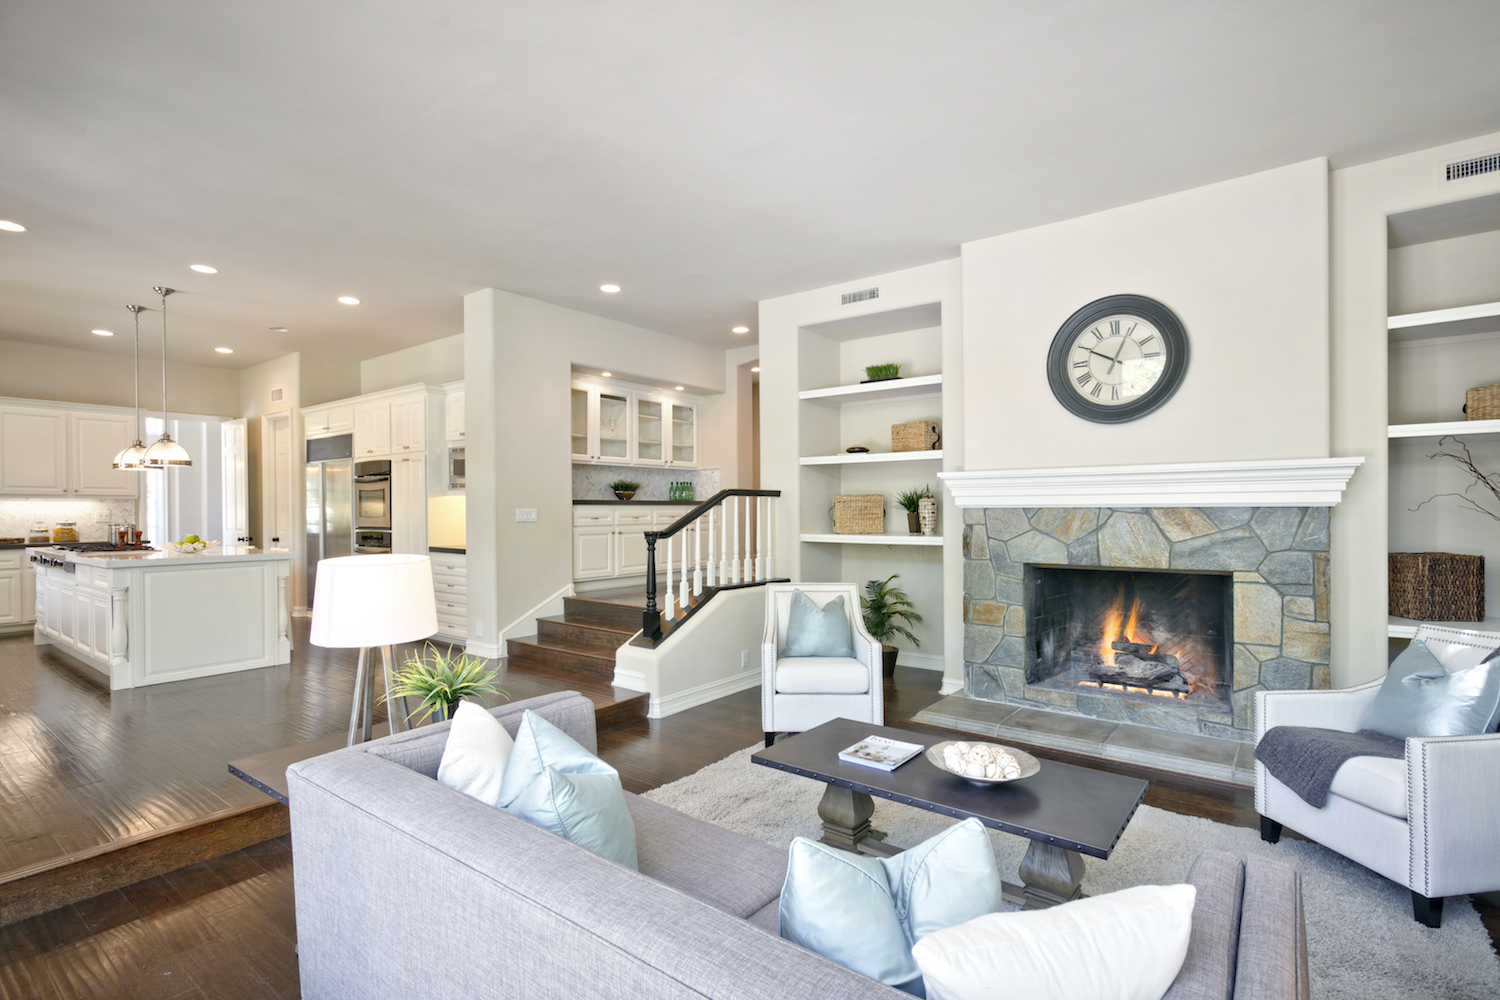 Casual Contemporary Style - Home Staging Design by White Orchid ...